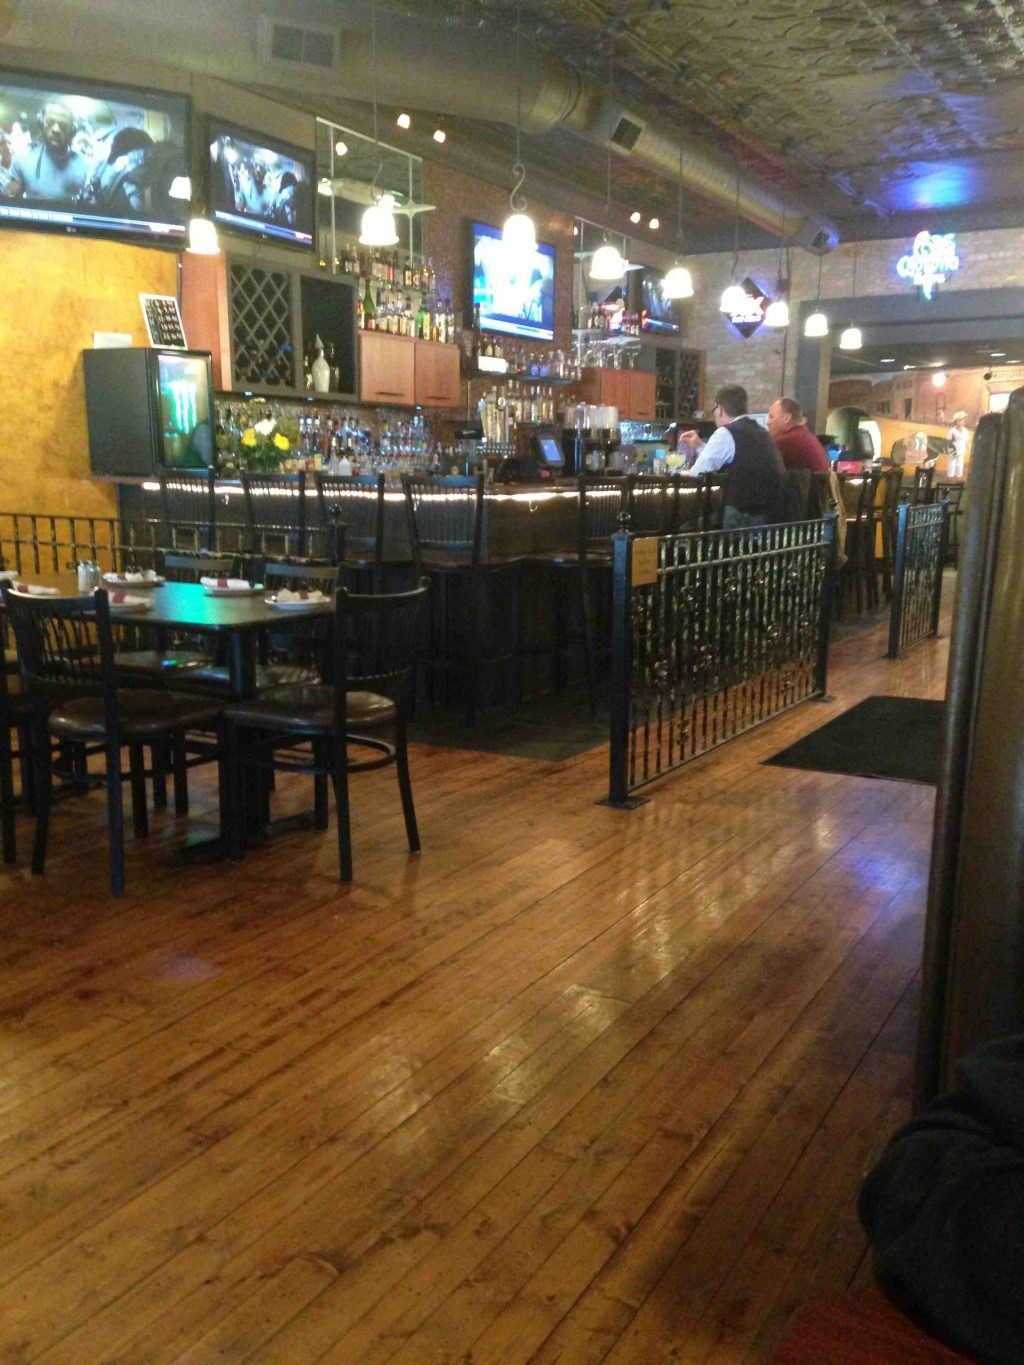 Margarita s bar and grill in valparaiso indiana for Indyanna pub